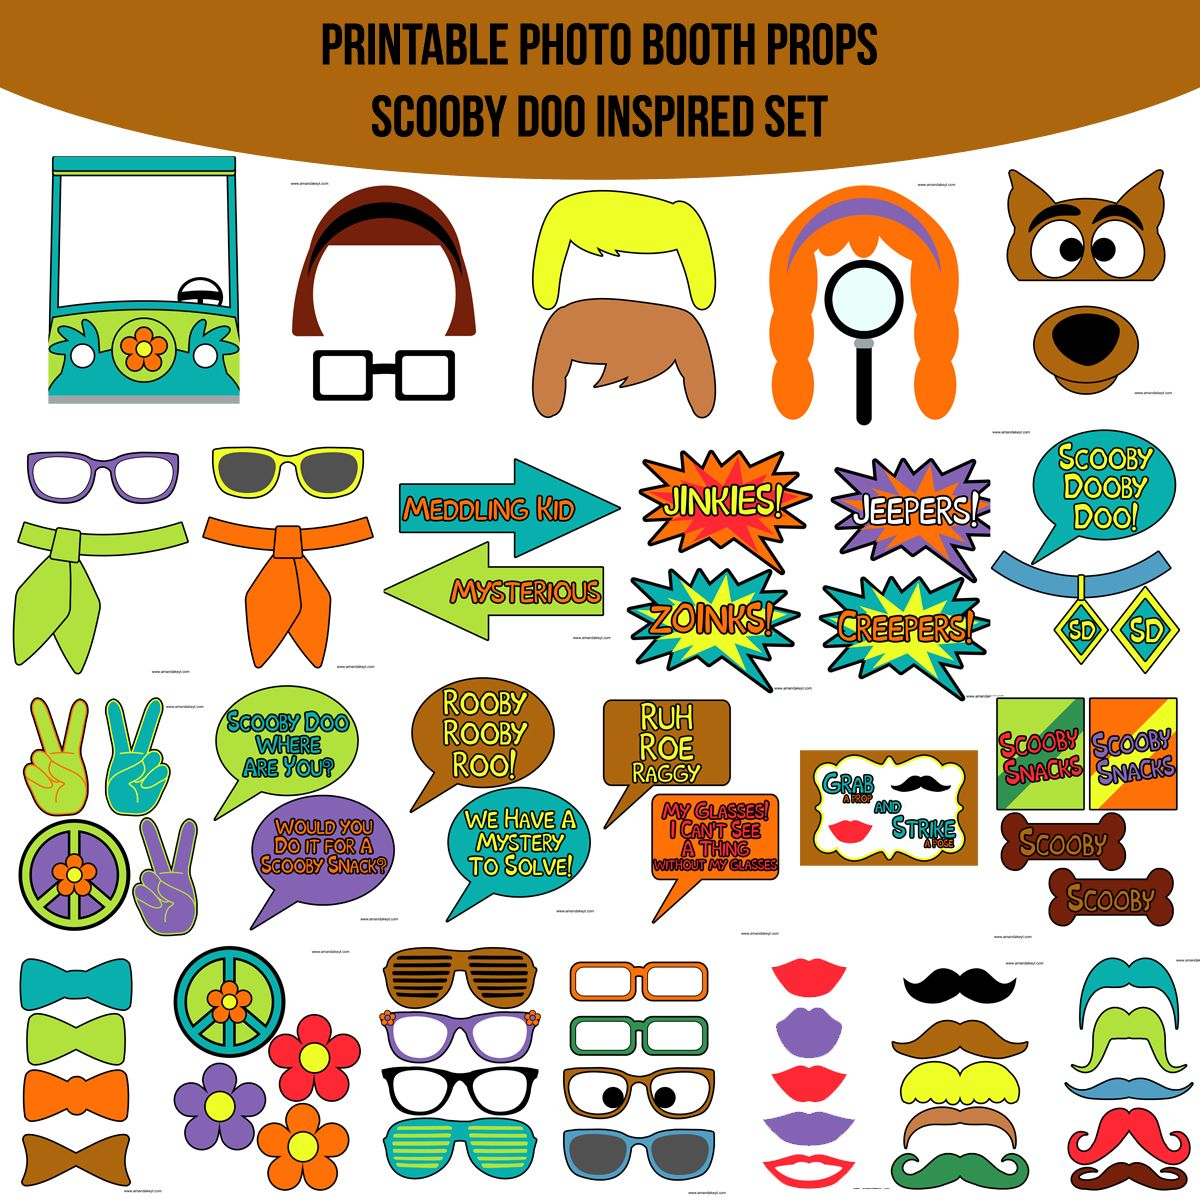 Instant Download Scooby Doo Inspired Printable Photo Booth Prop Set ...